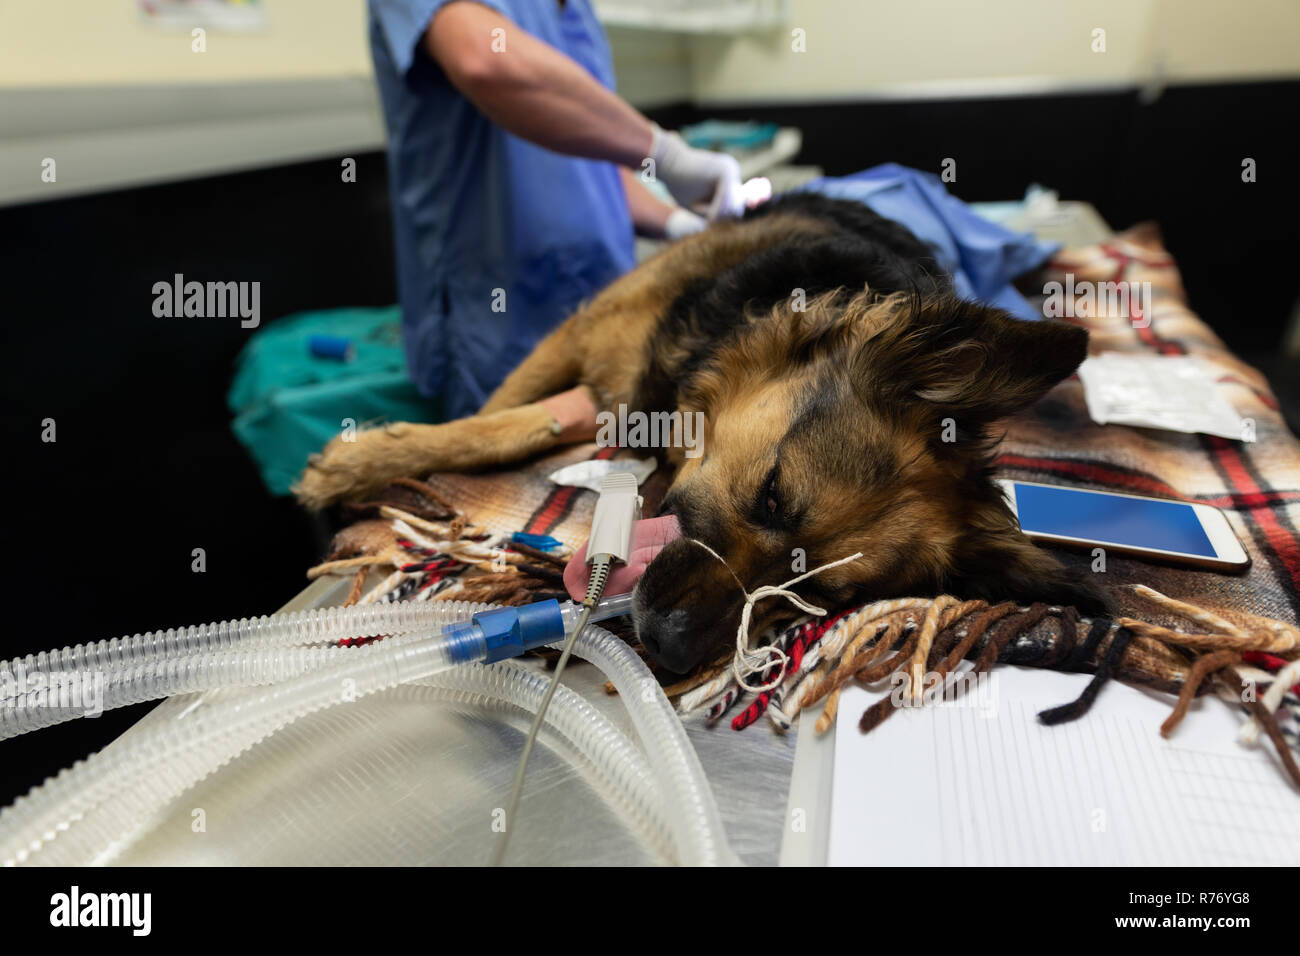 Surgeon operating a dog in operation theatre - Stock Image